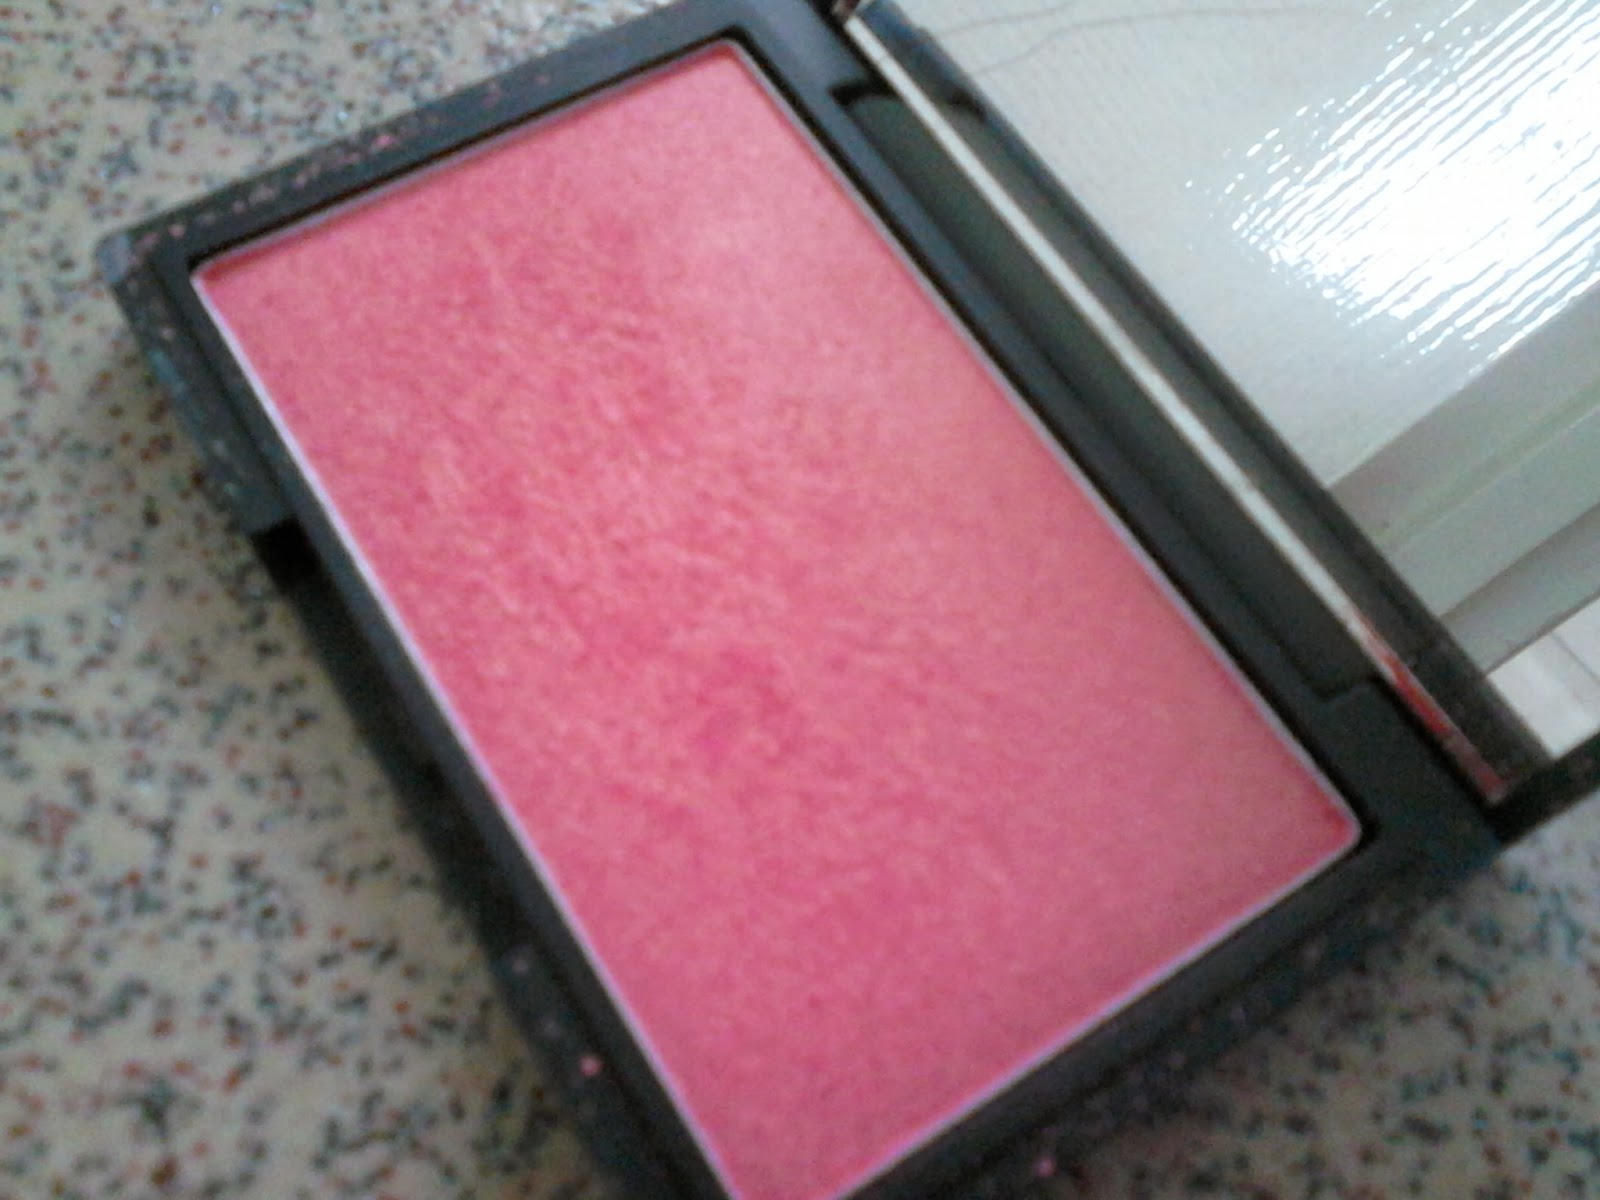 Sleek Shimmer Blush Rose Gold